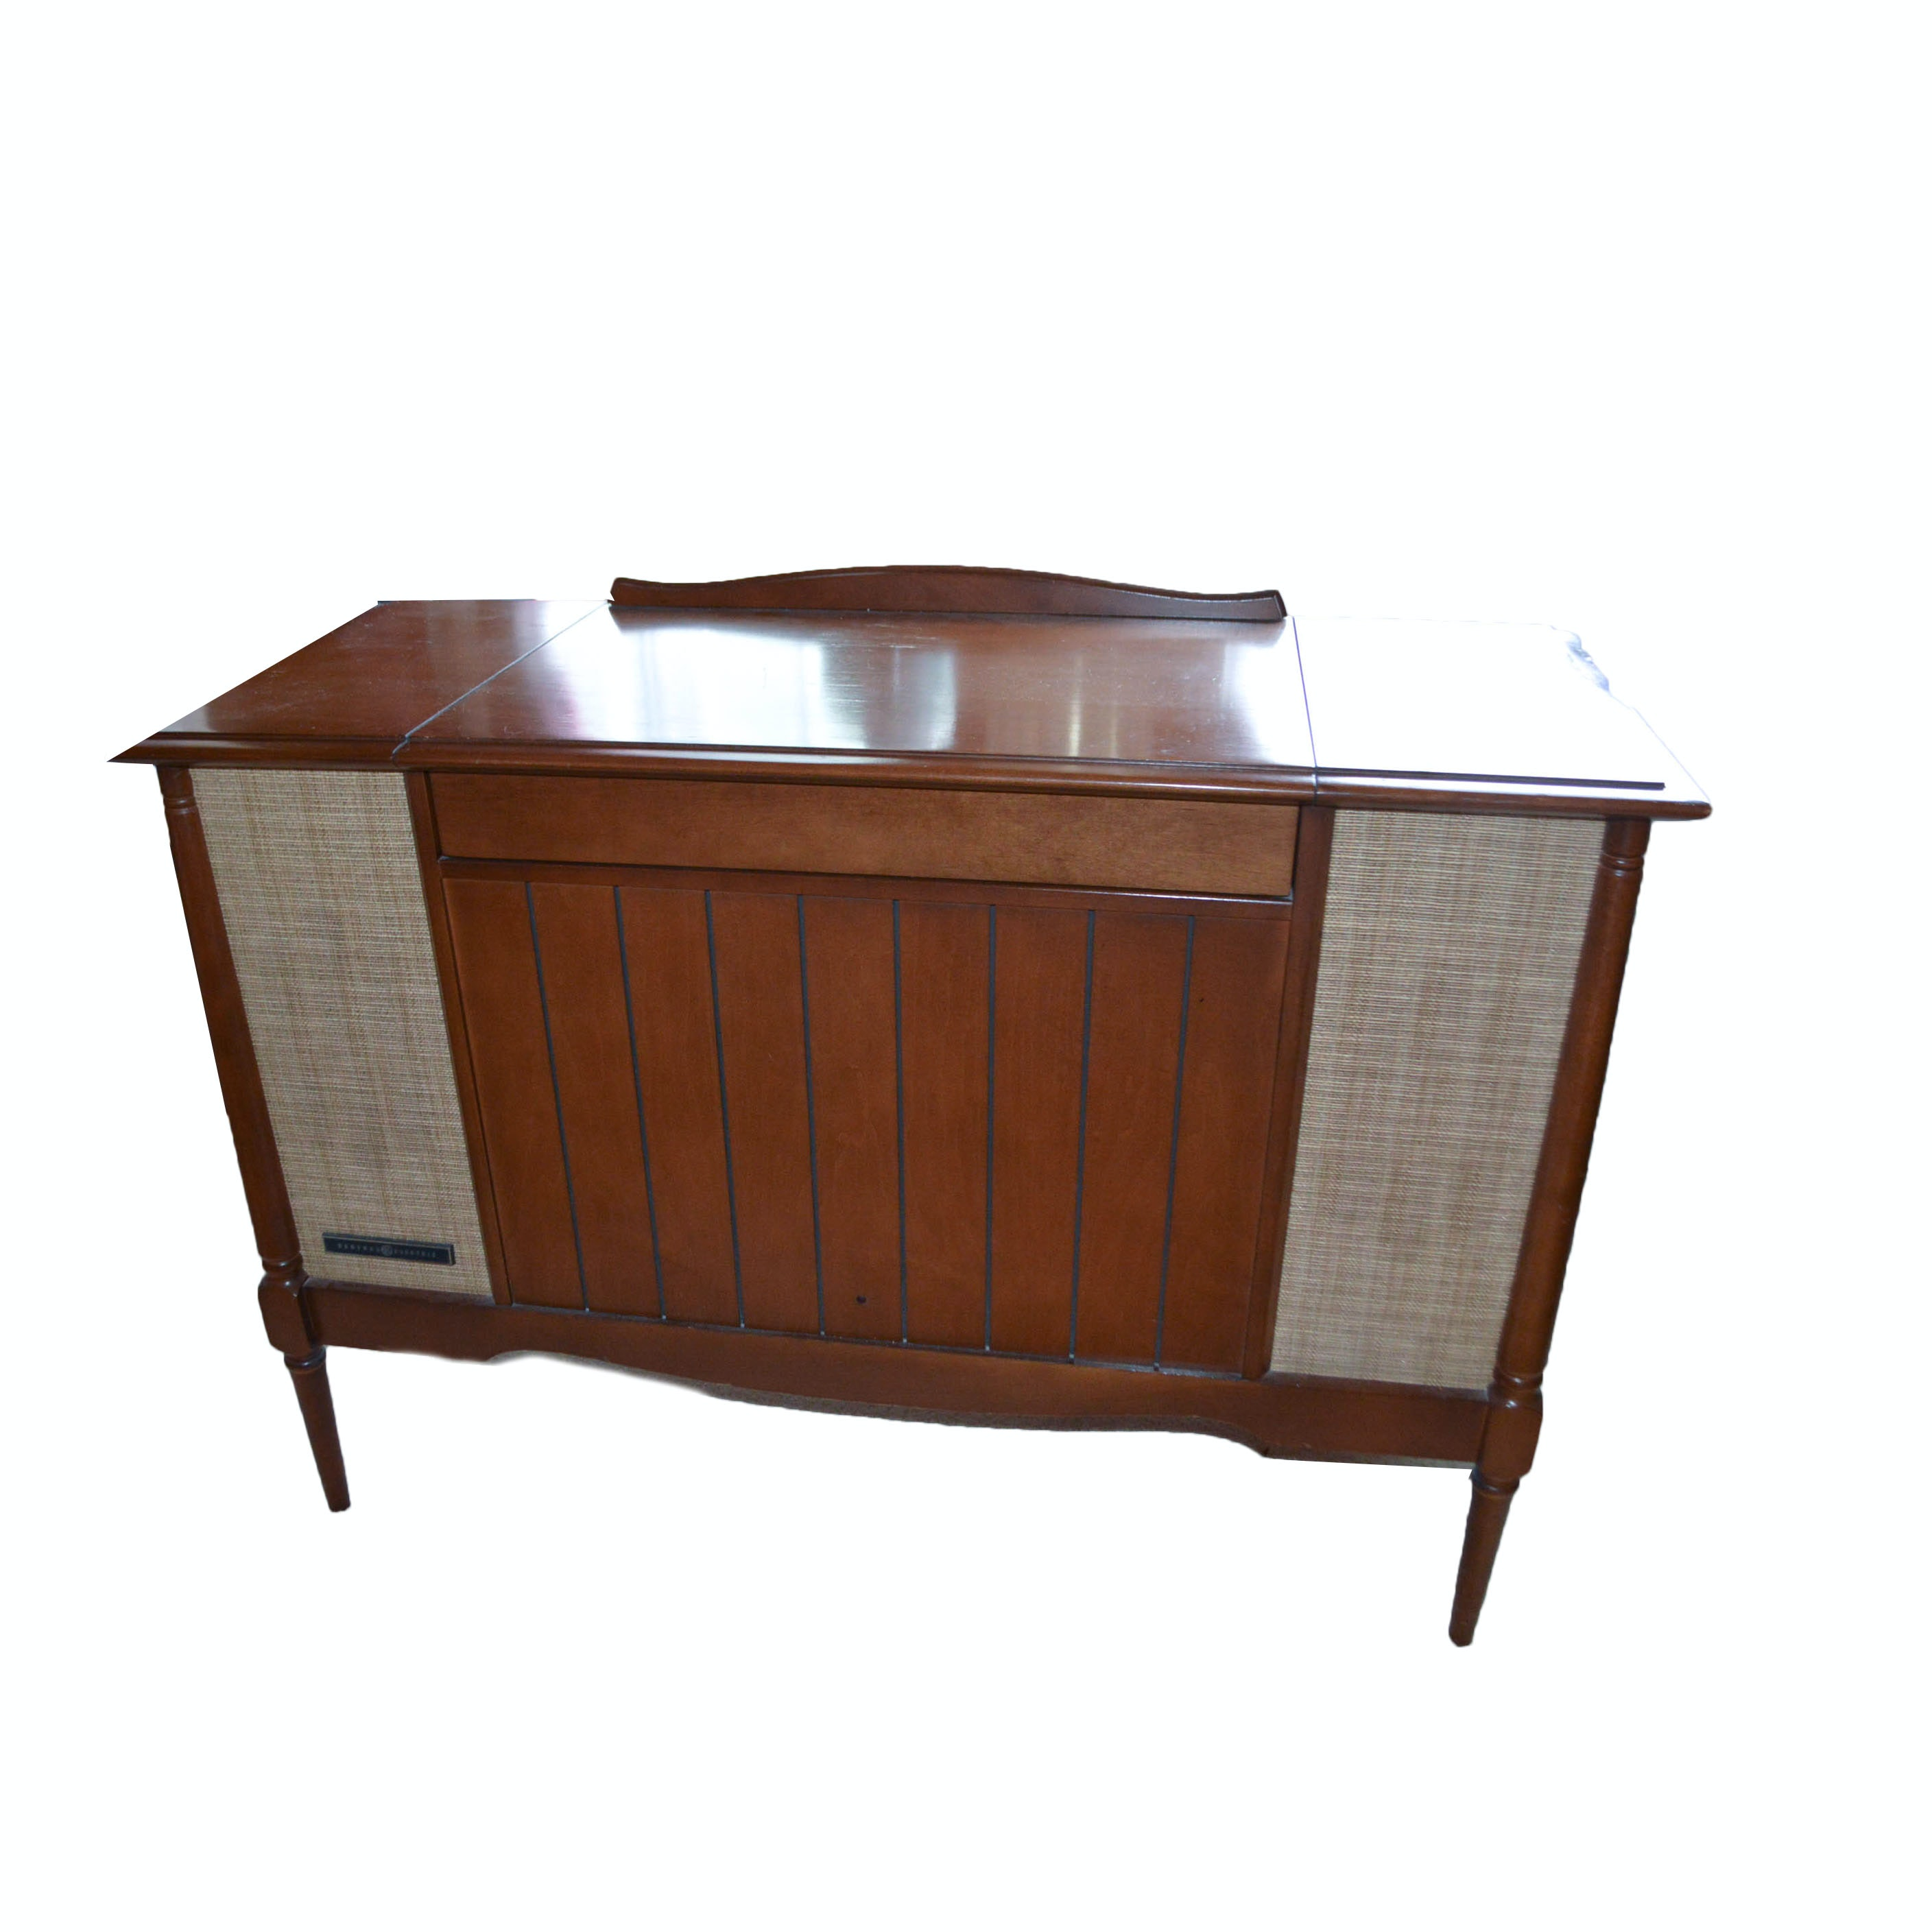 Vintage Stereo Cabinet by General Electric